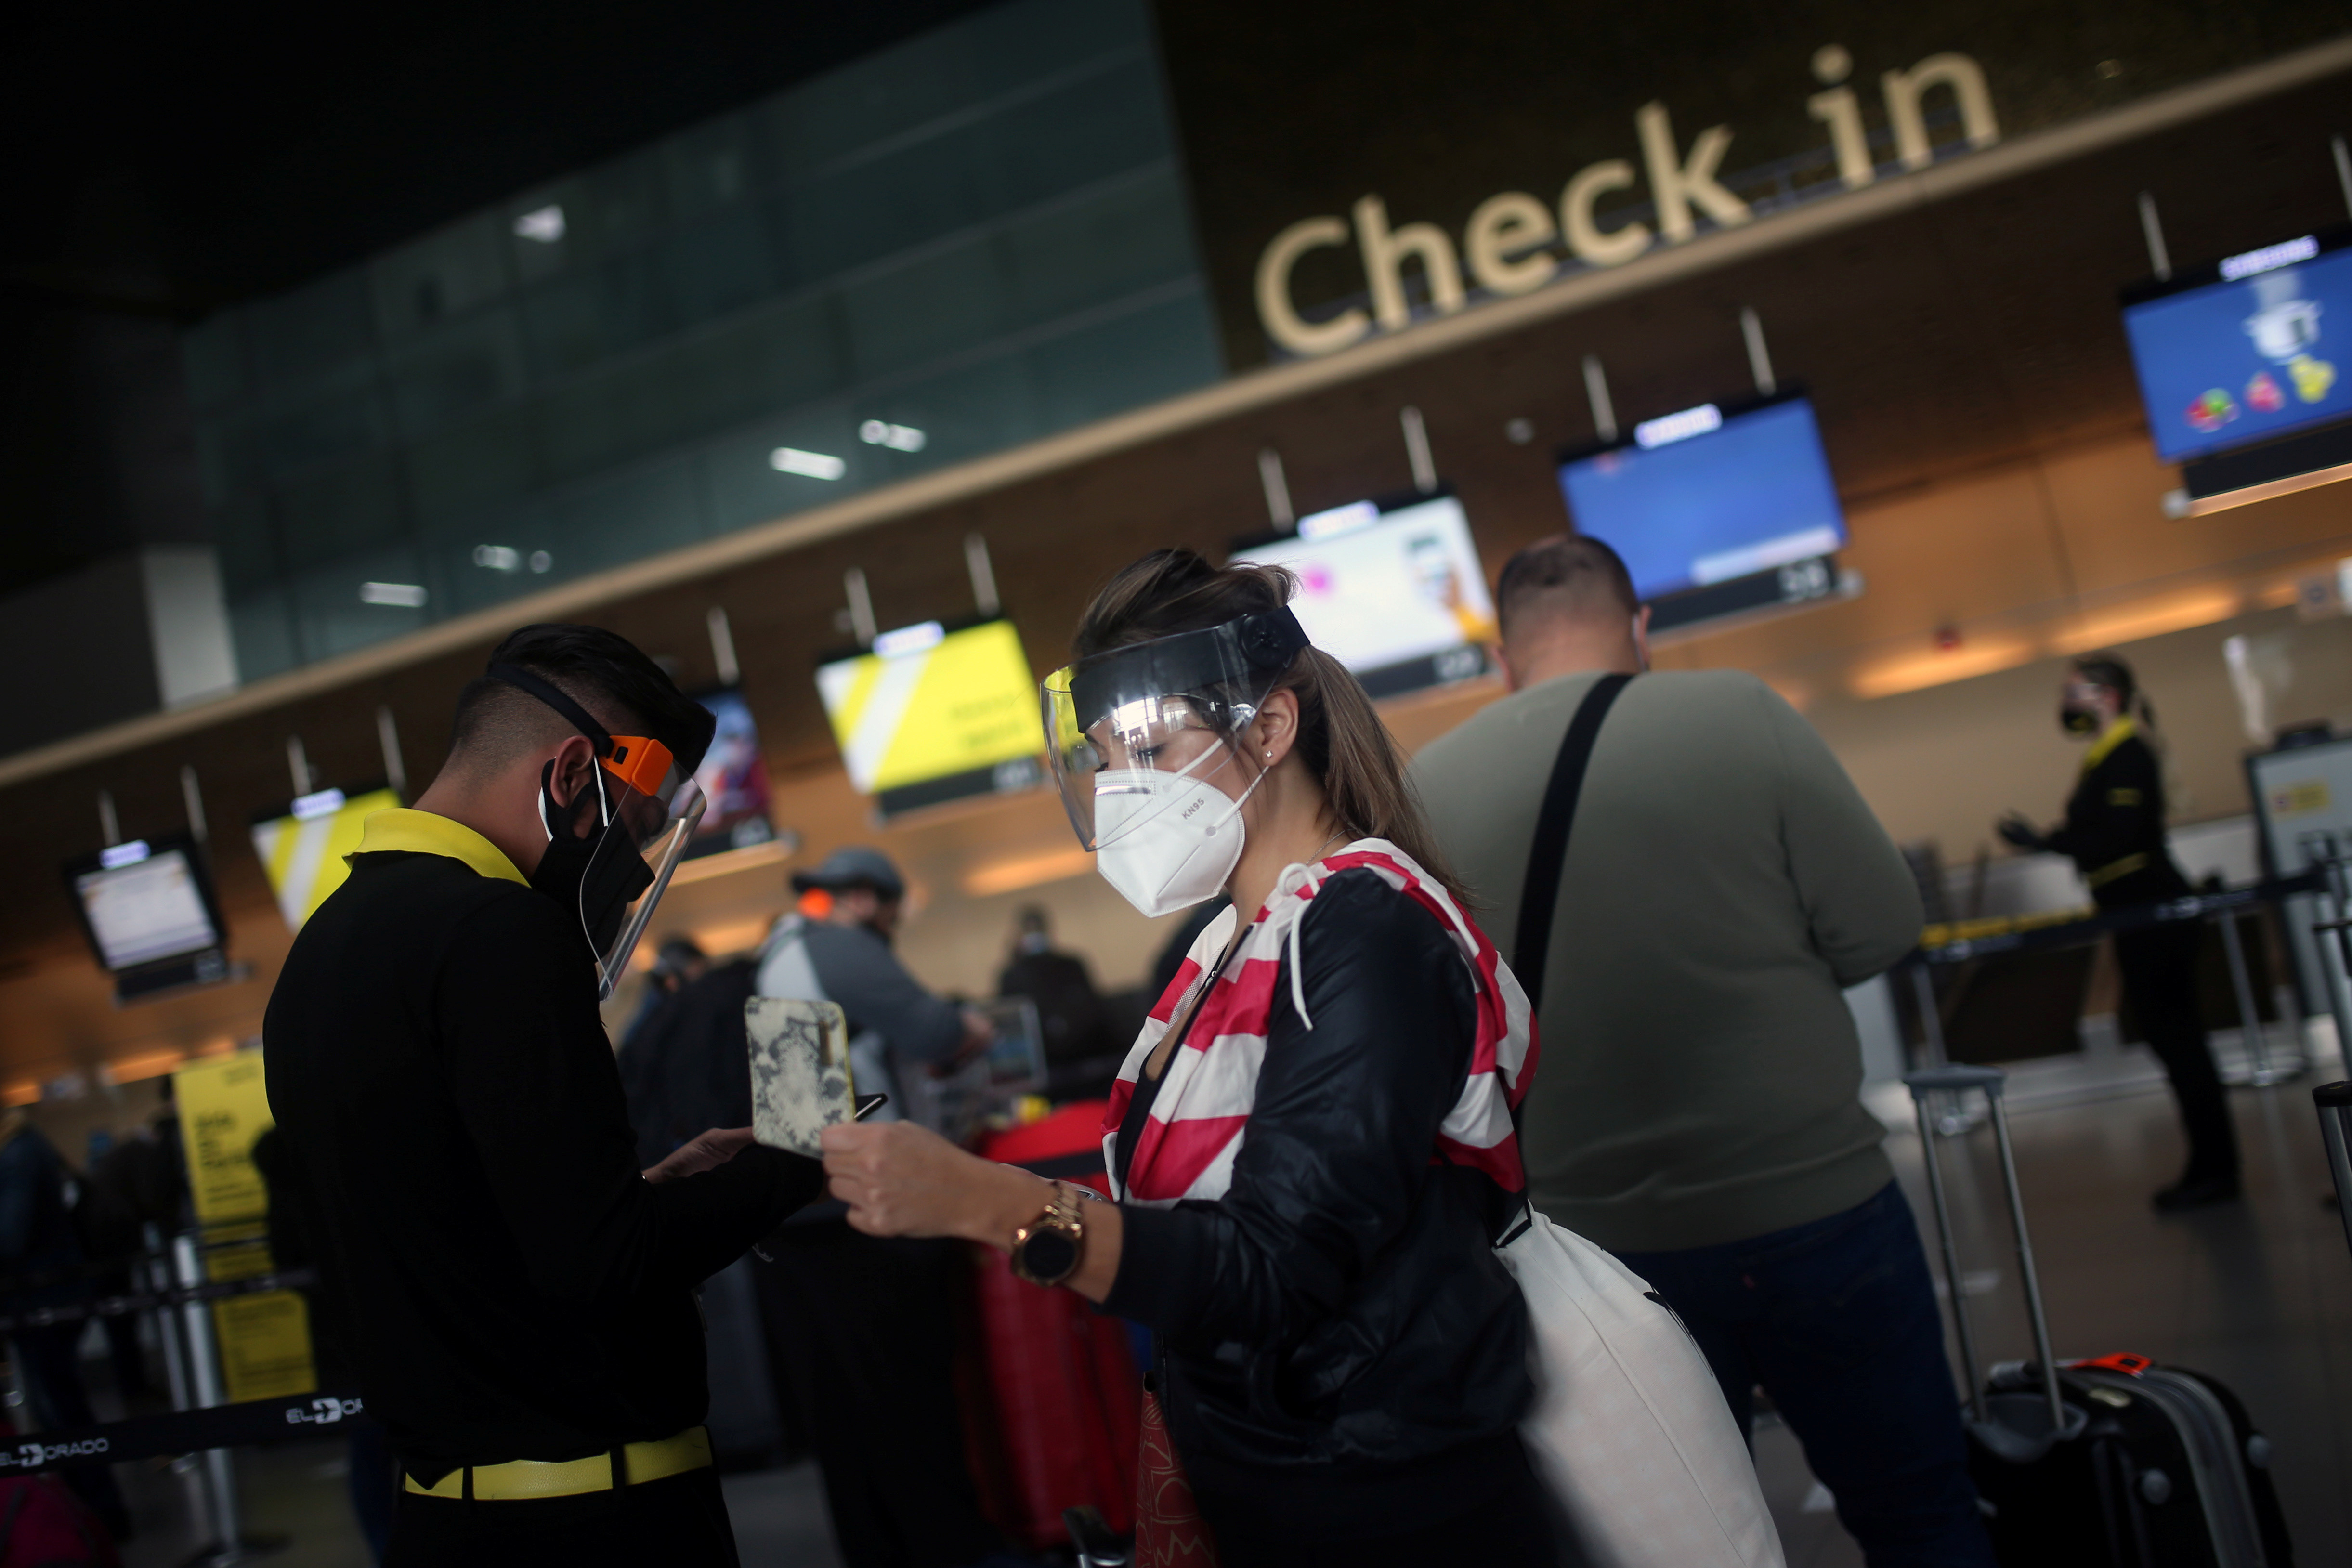 Passengers wearing face masks line up to check in at El Dorado airport, after the Colombian government gave the authorization to reactivate international flights, amidst the coronavirus disease (COVID-19) outbreak, in Bogota, Colombia September 21, 2020. REUTERS/Luisa Gonzalez - RC253J9KGO28